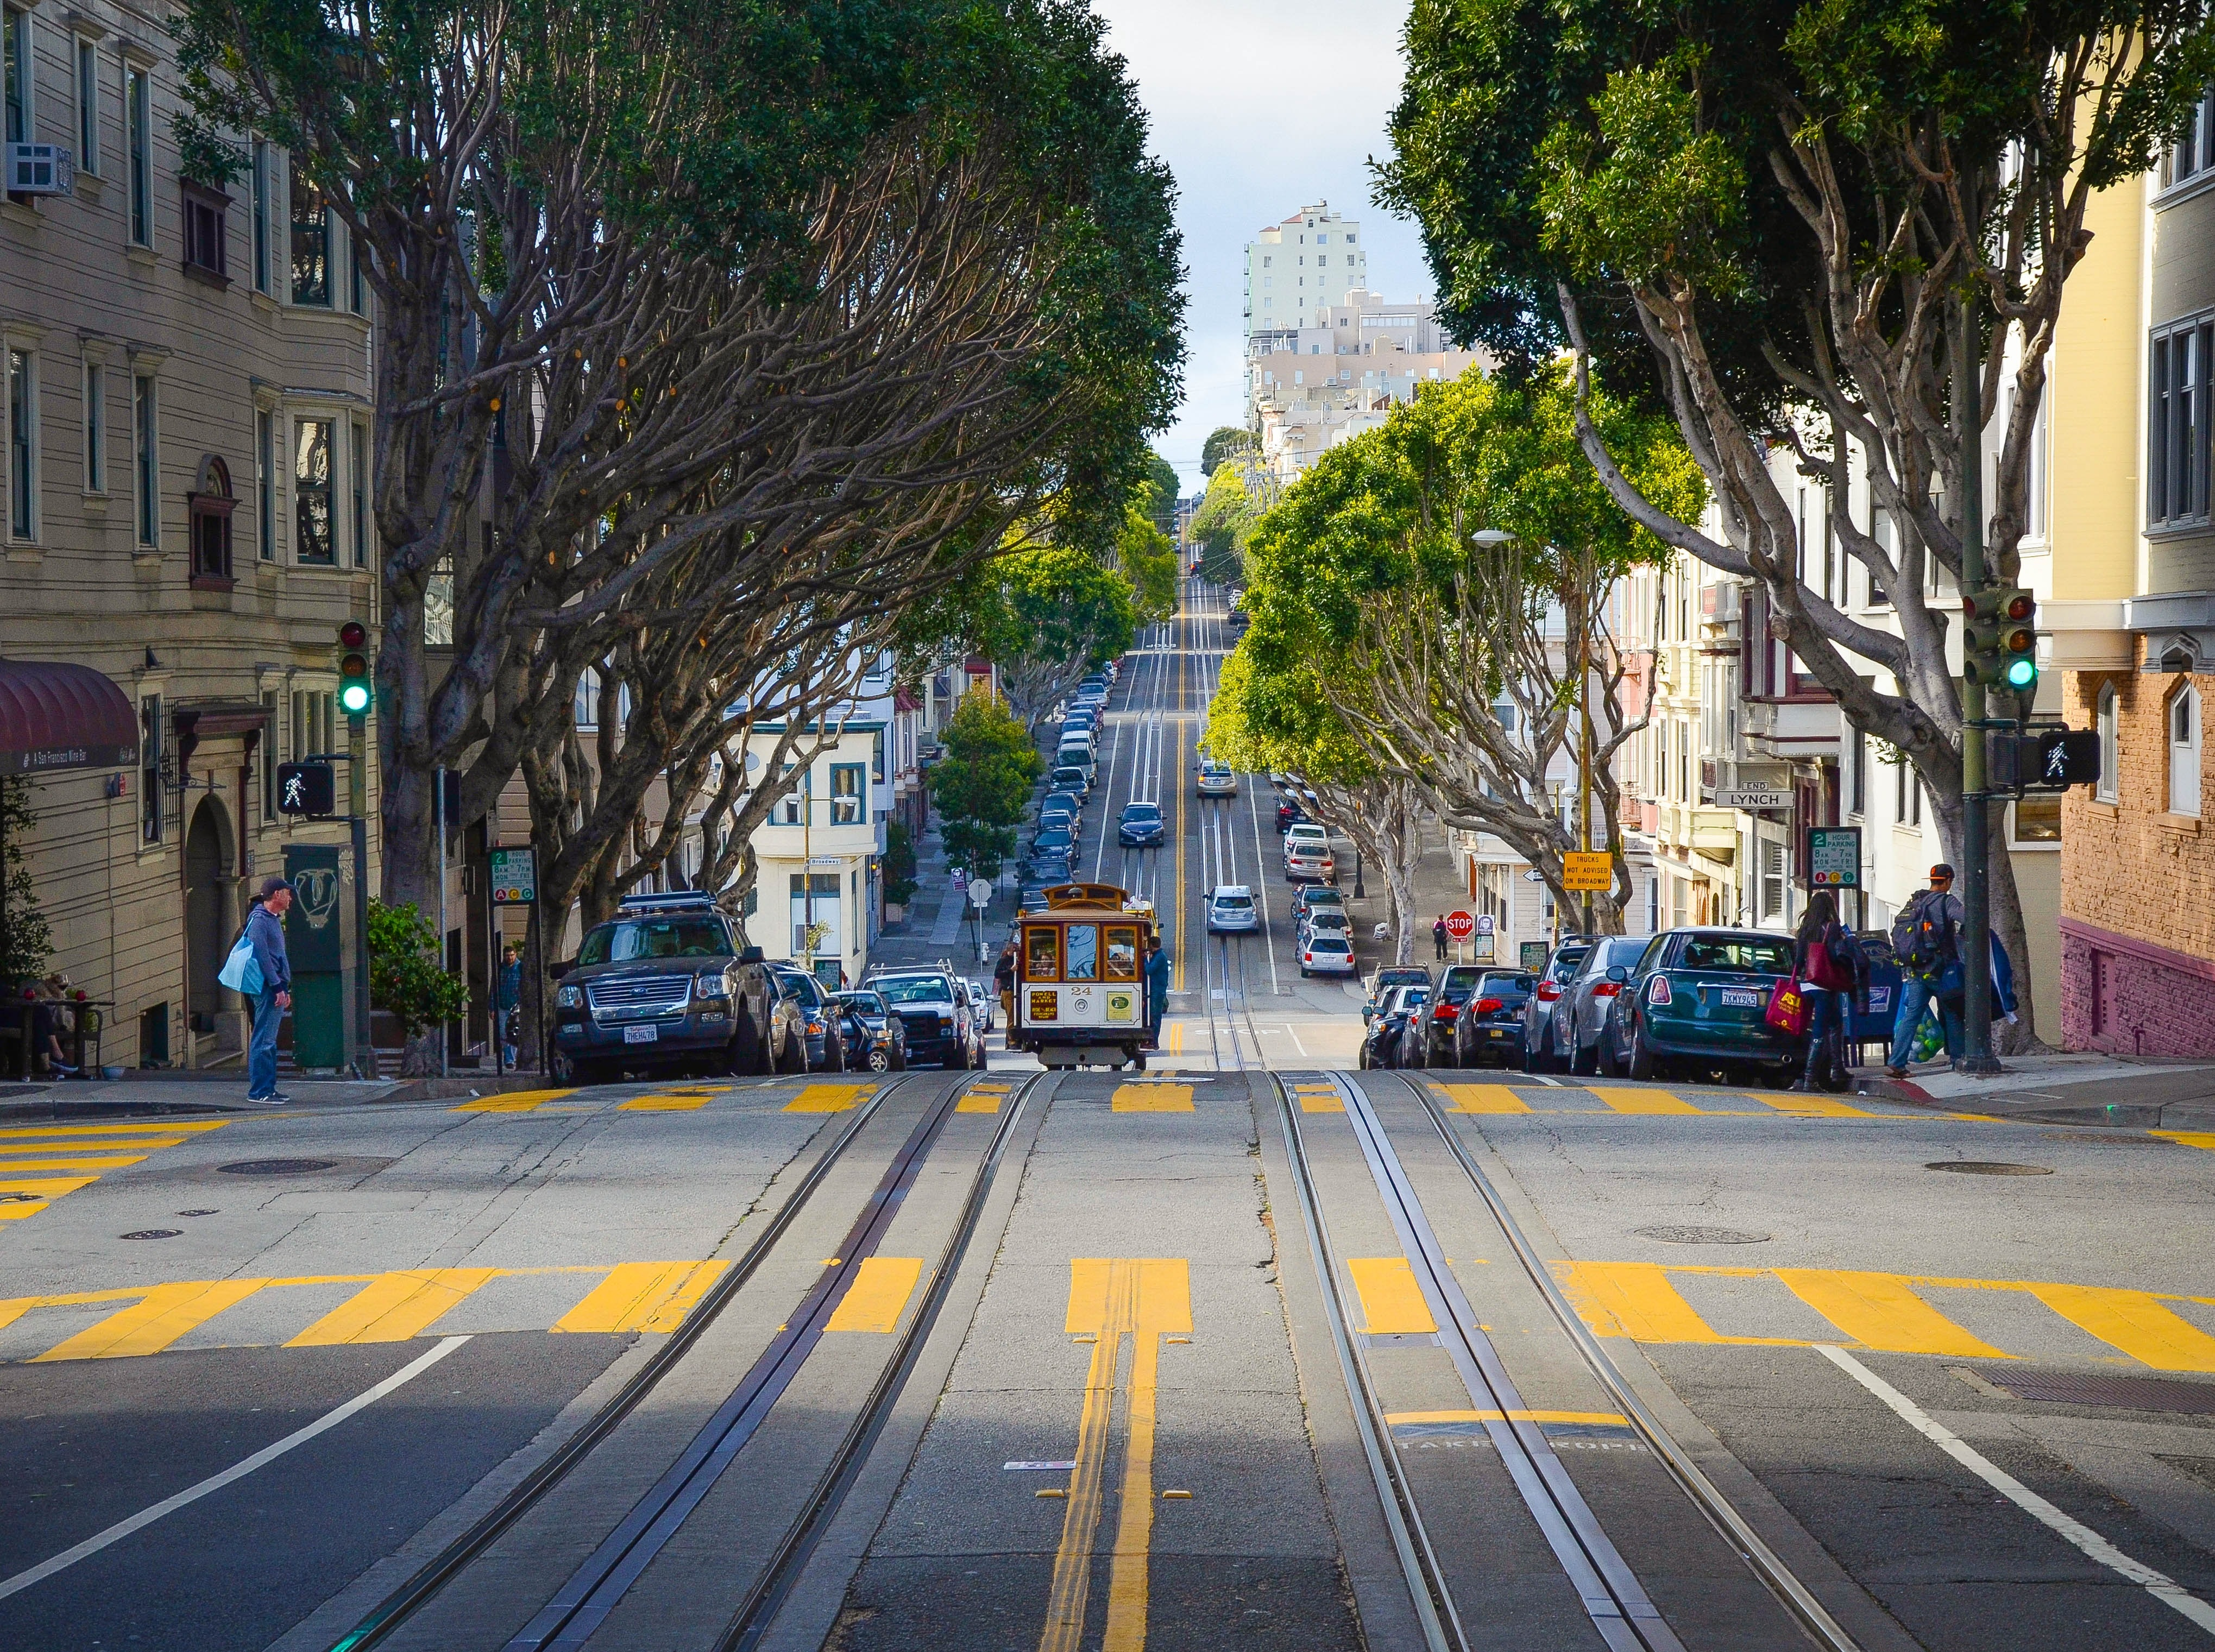 A well designed street in San Francisco, depicting a mixture of uses and modalities.